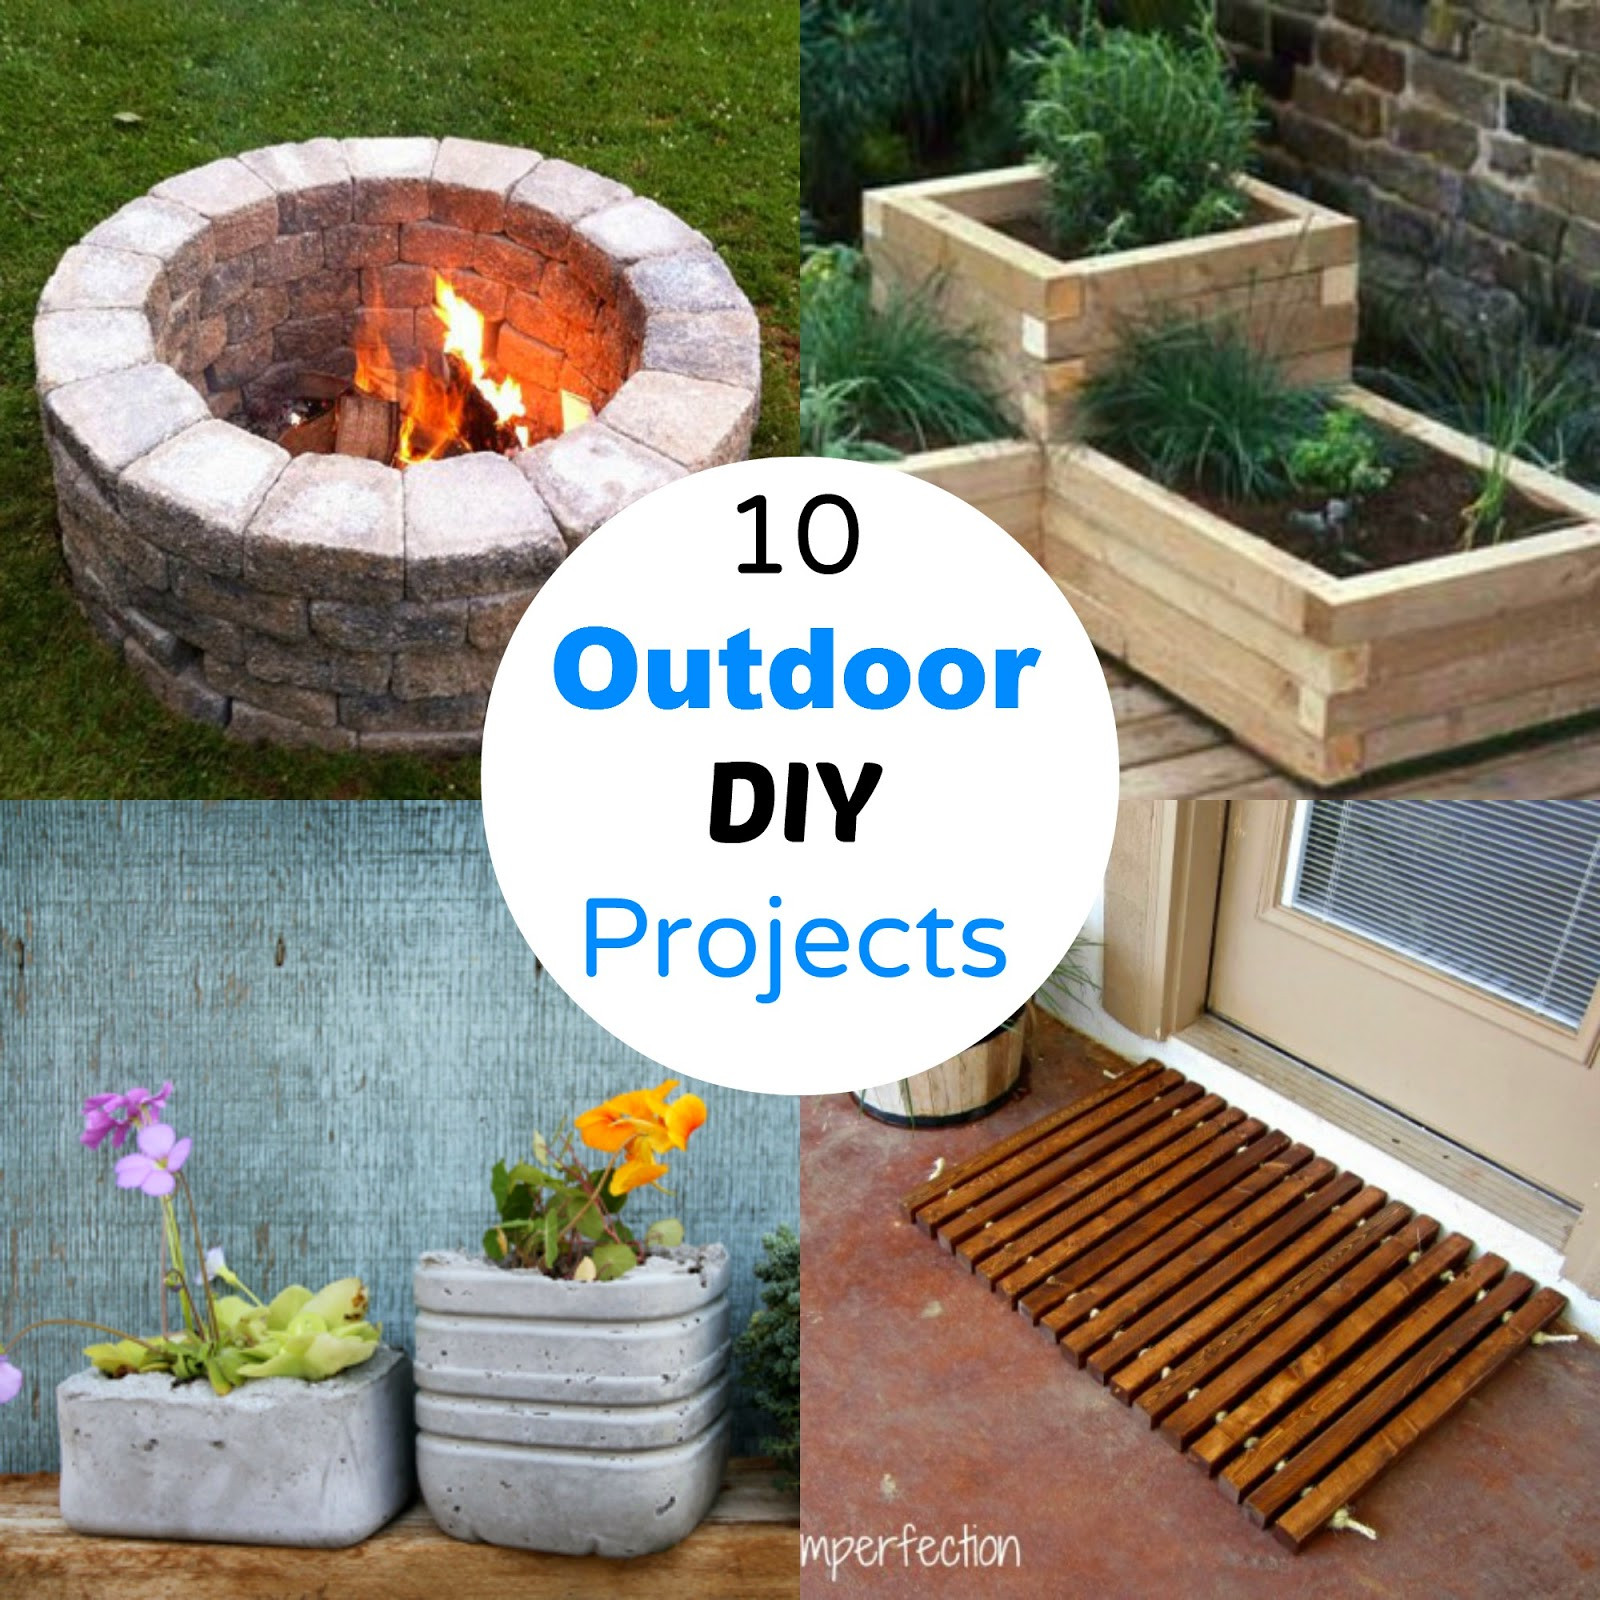 DIY Projects Outdoor  10 Outdoor DIY Projects